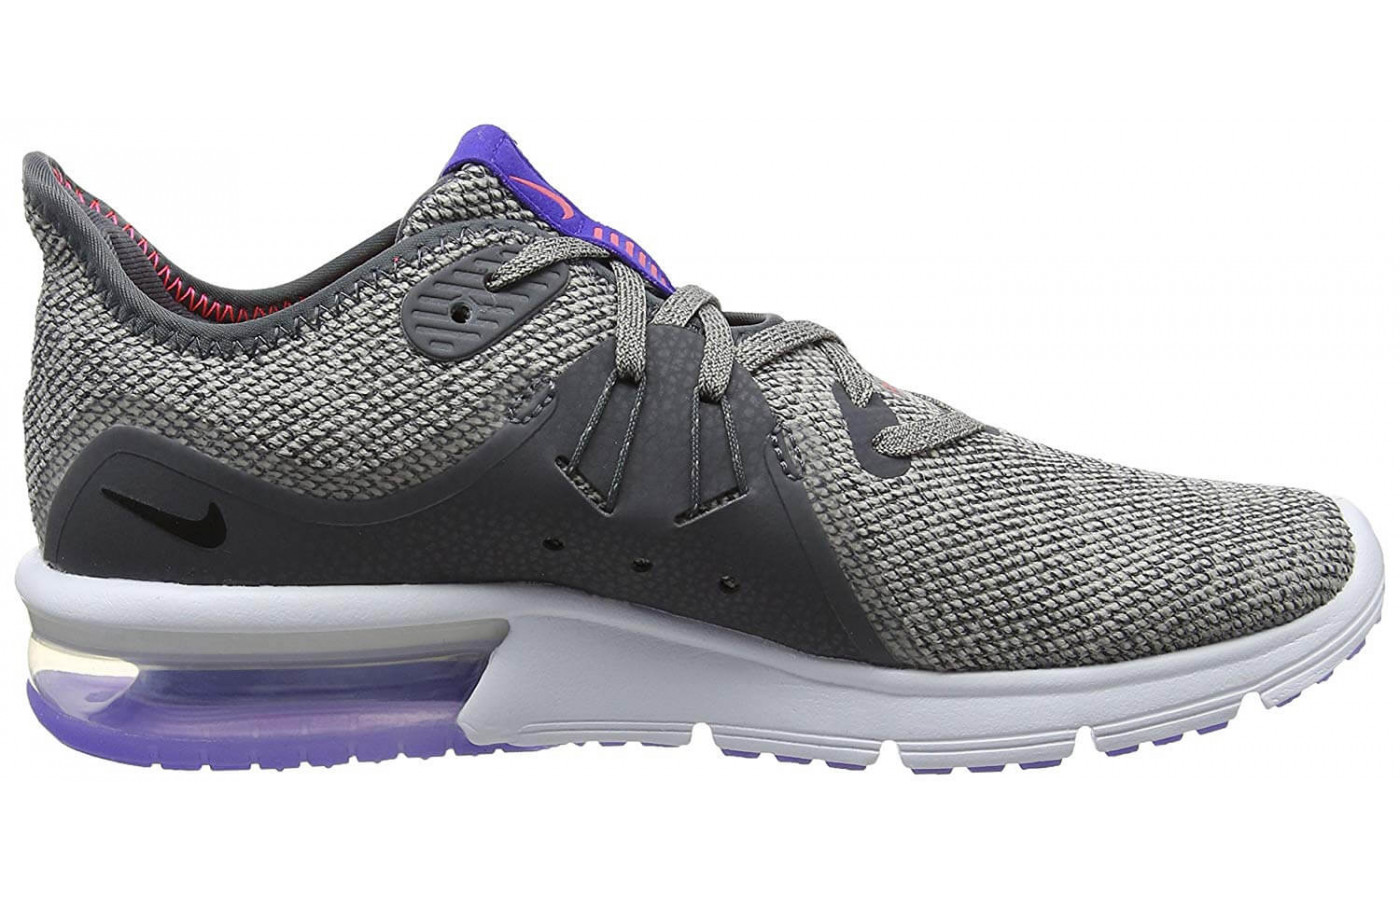 The Air Max Sequent 3 features a Phylon midsole with an Air Max Unit